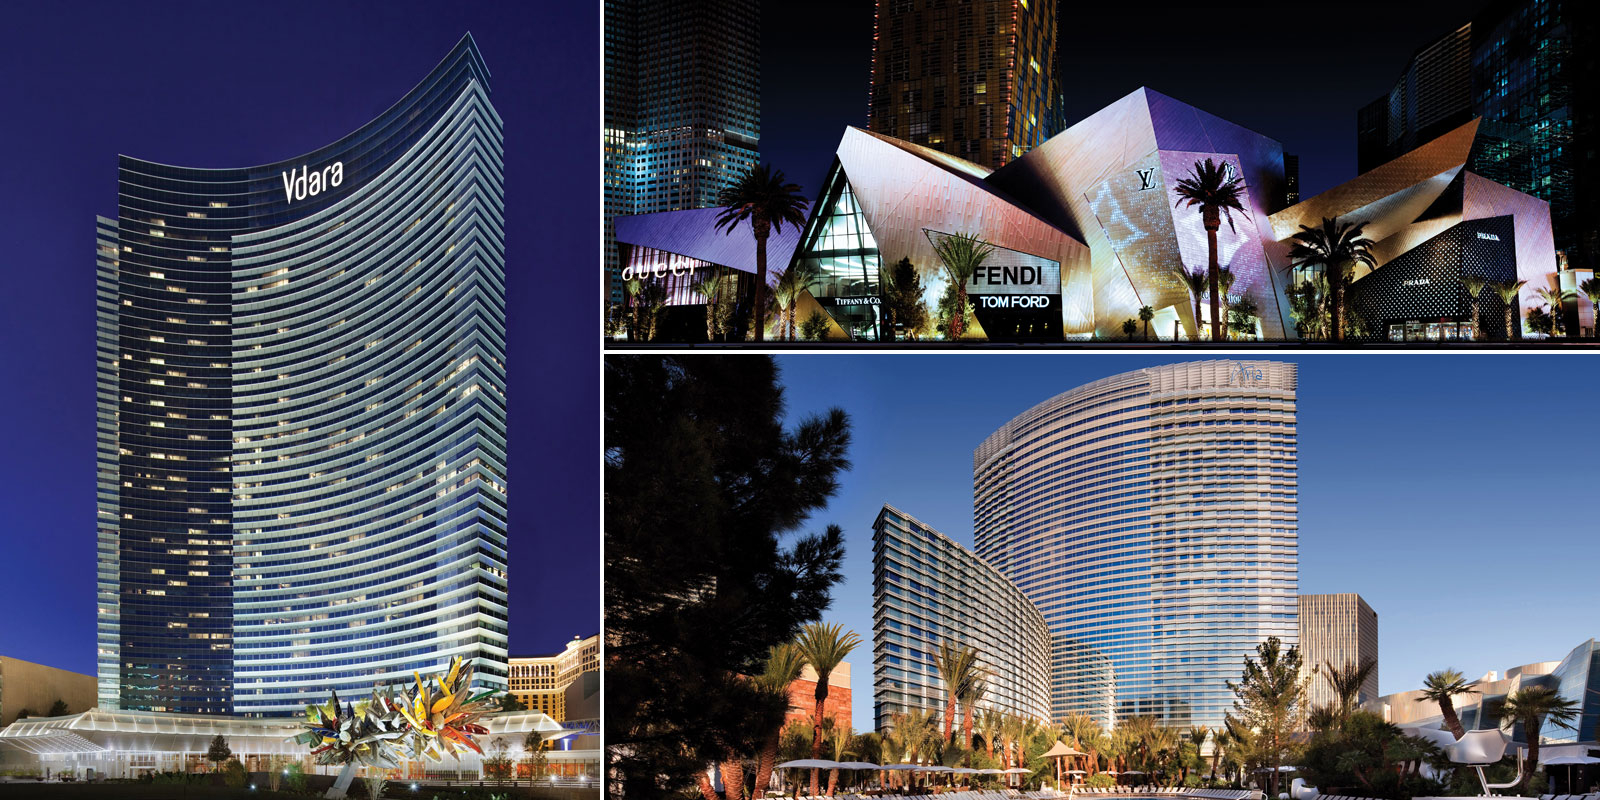 Vdara, Crystals and Aria